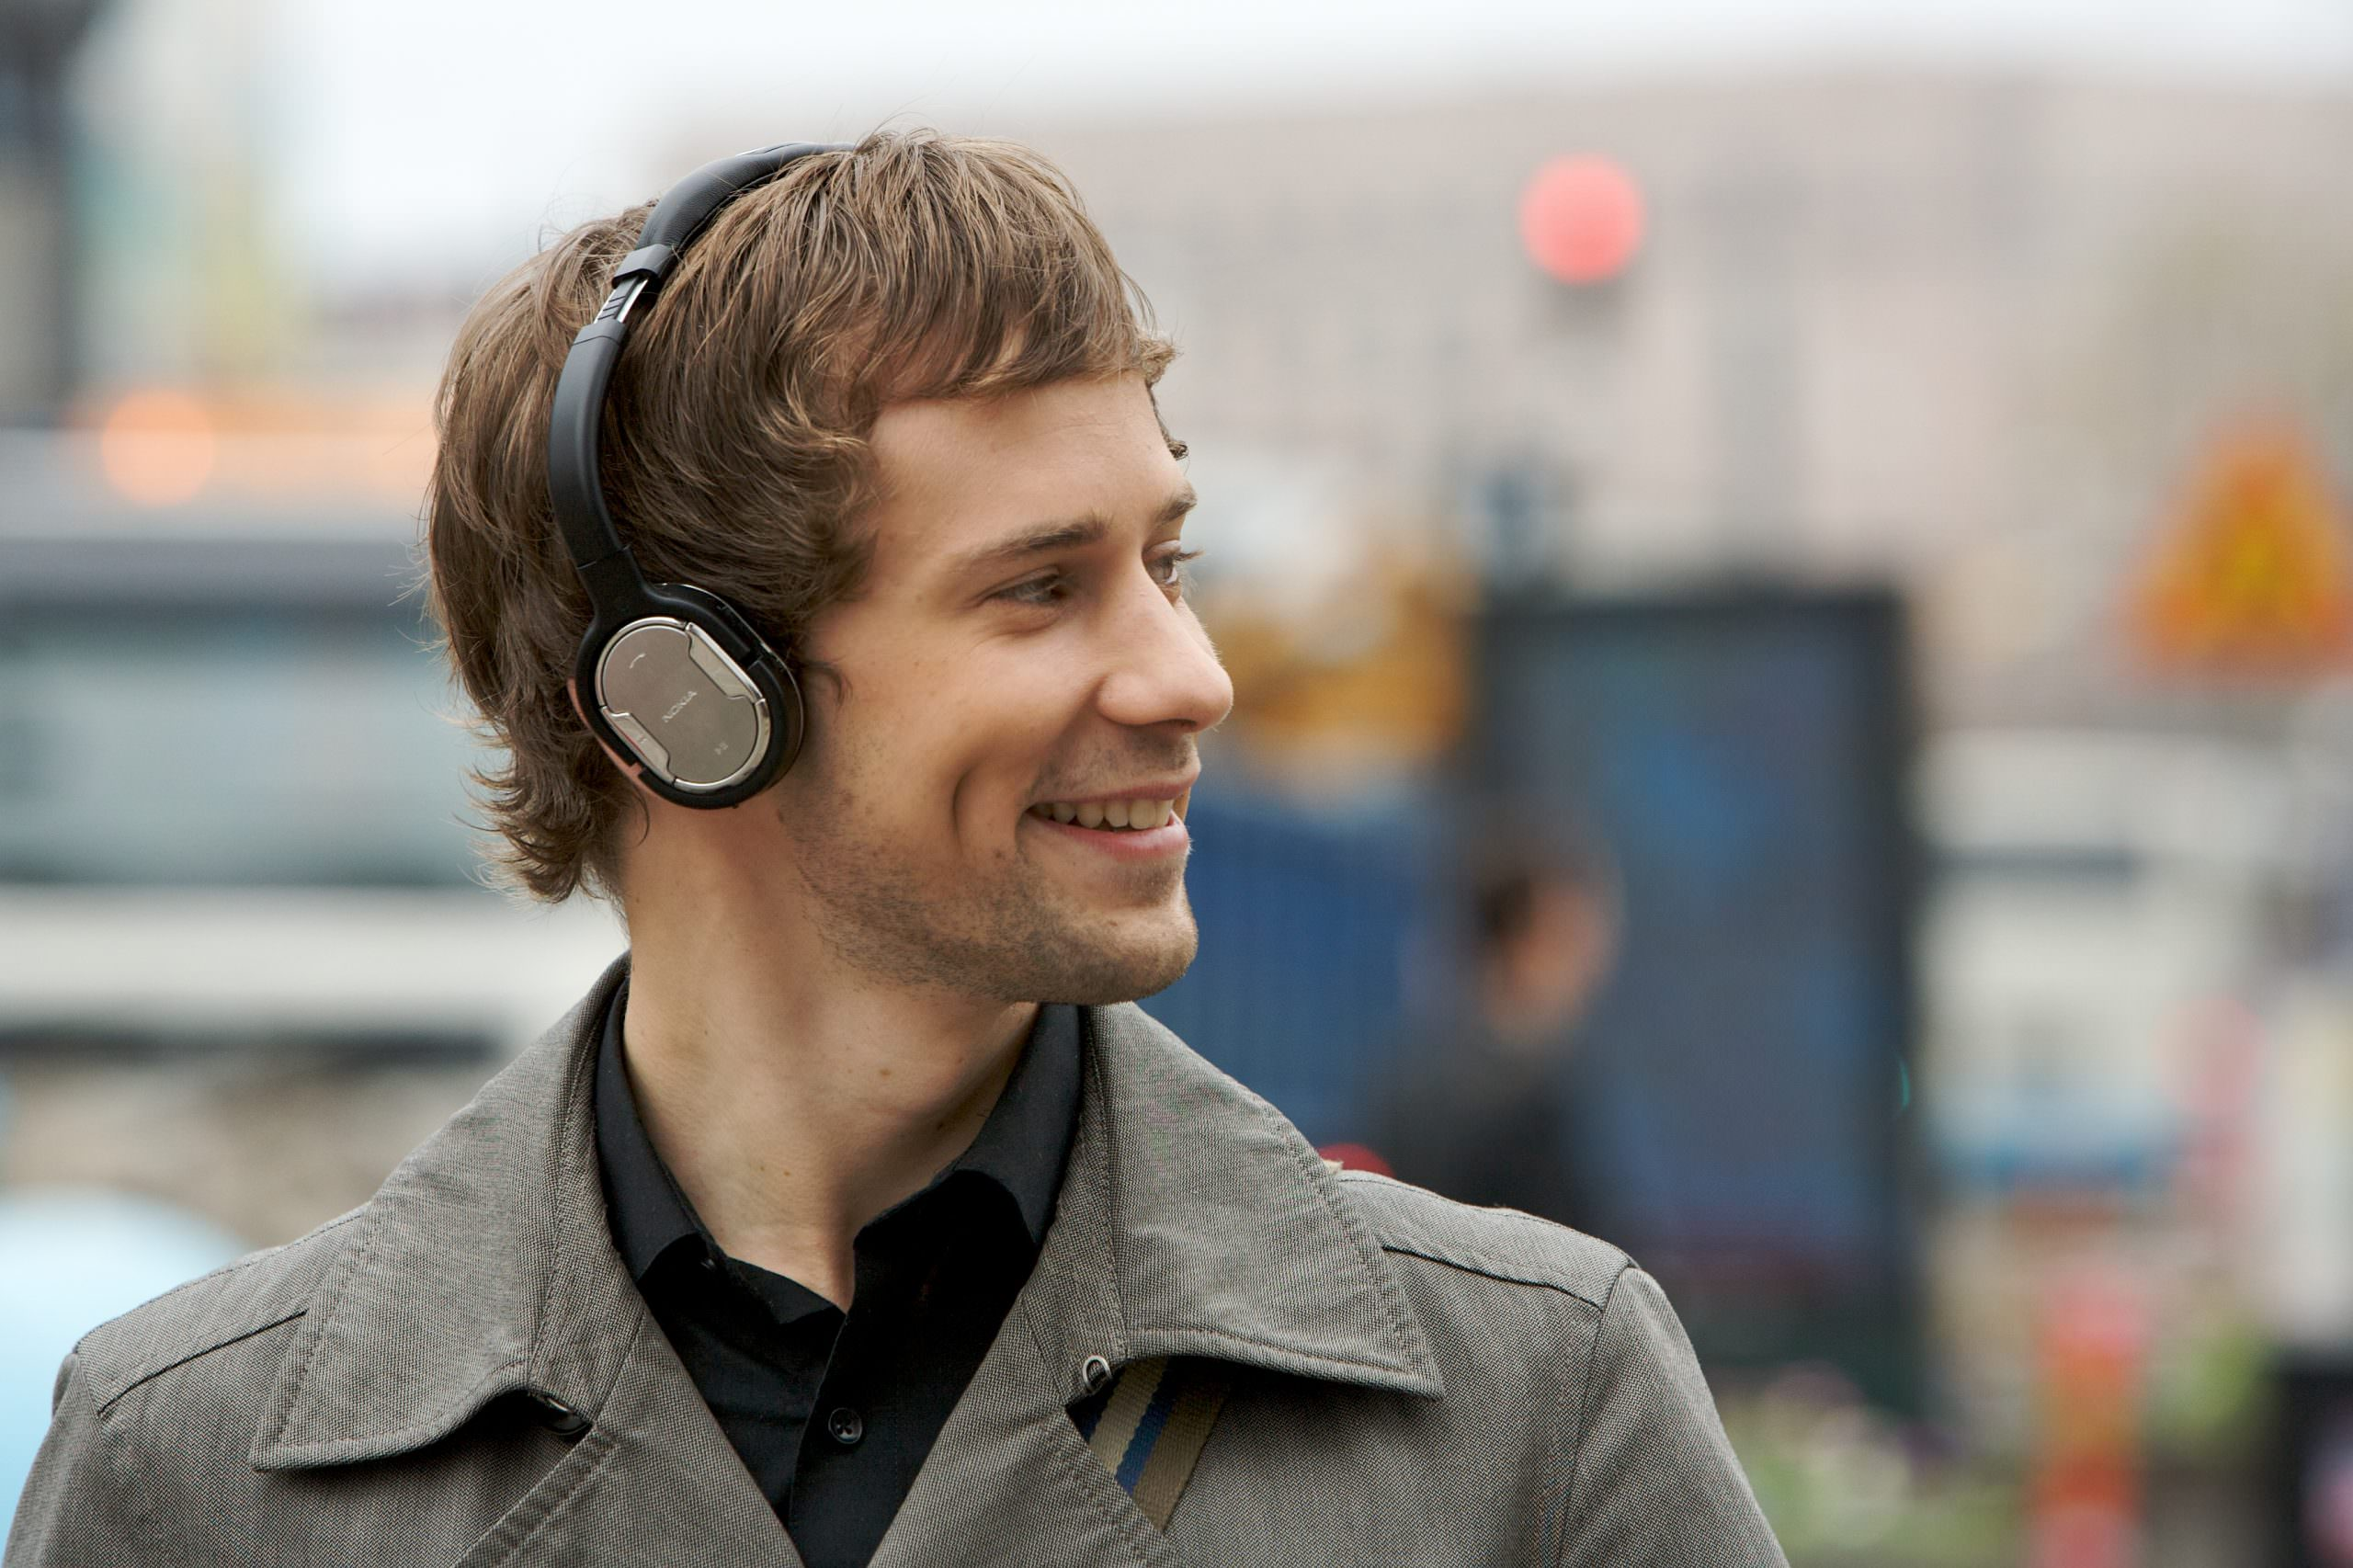 Nokia BH-905 Bluetooth Headset